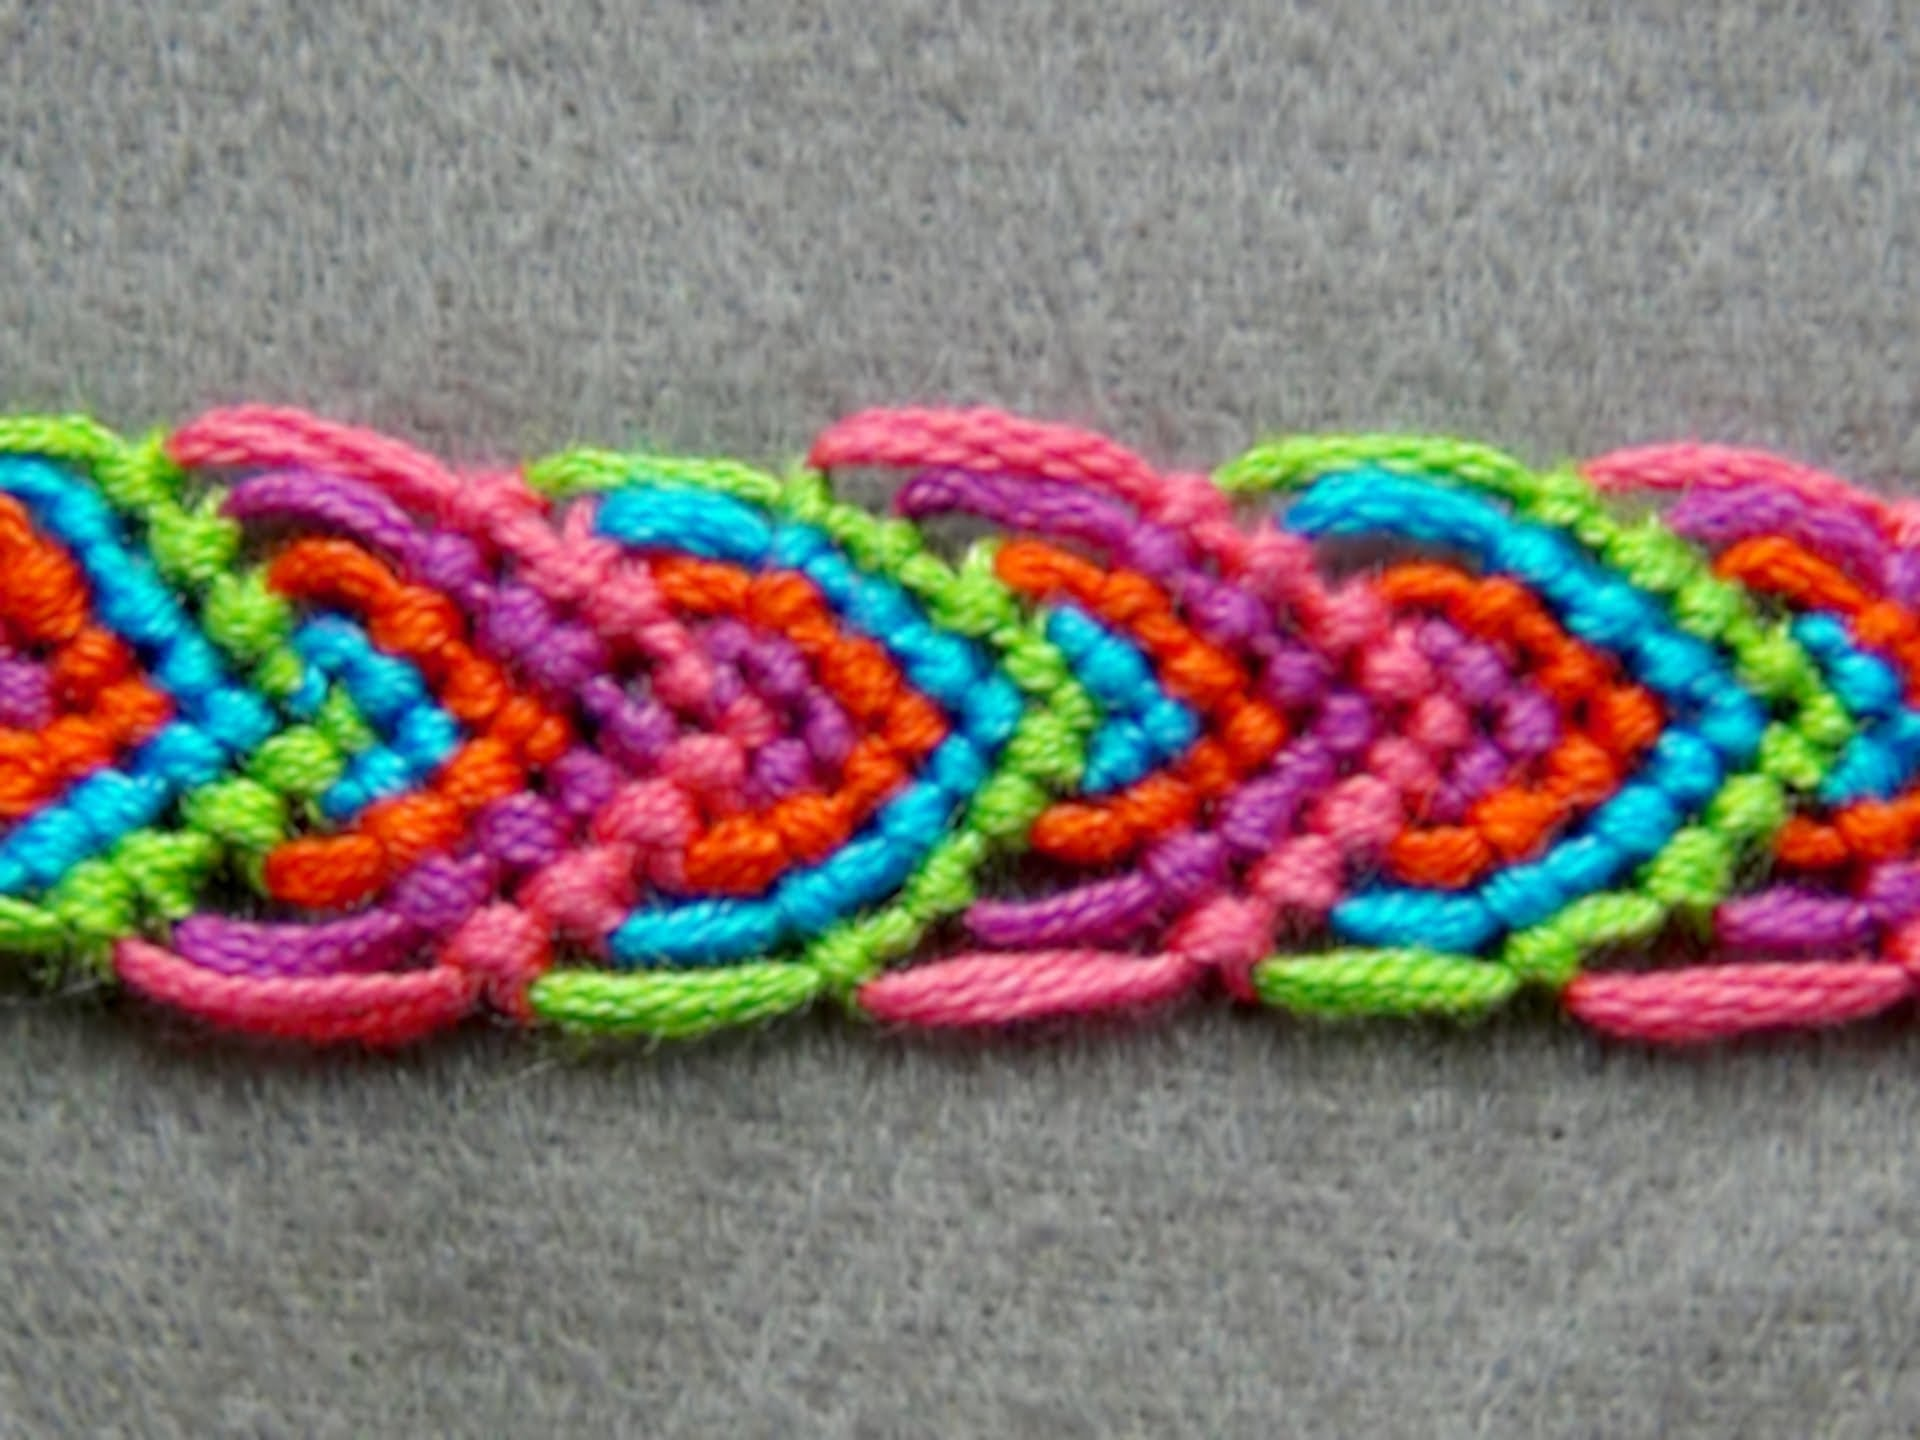 Crochet Thread Bracelet Pattern Bangle and Bracelets